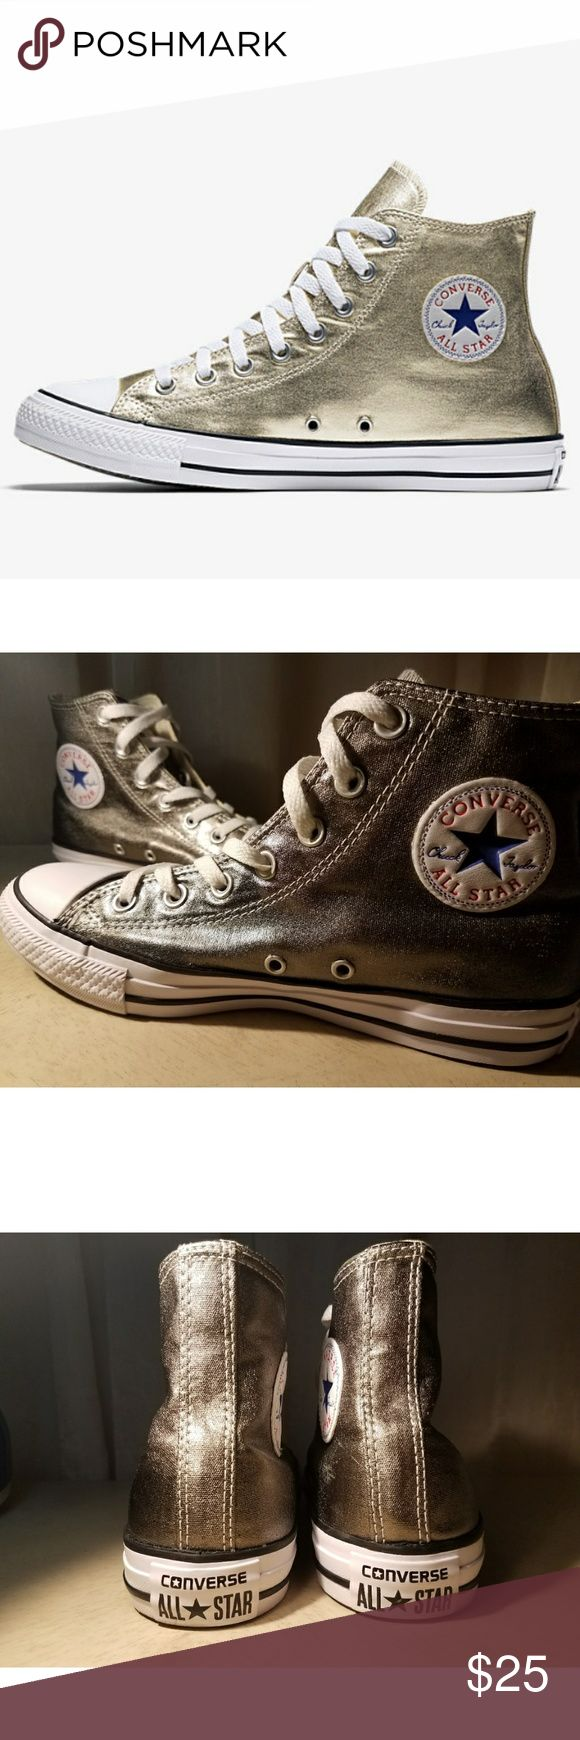 Converse Chuck Taylor  All Star Metallic High Top Unisex design in size Men-6. Worn once.  The Converse Chuck Taylor All Star Metallic dresses up your favorite Chucks in high-shine canvas for an elevated look wherever you go.  Created in 1917 as a non-skid basketball shoe, the All Star was originally promoted for its superior court performance by basketball mastermind Chuck Taylor. Converse Shoes Sneakers